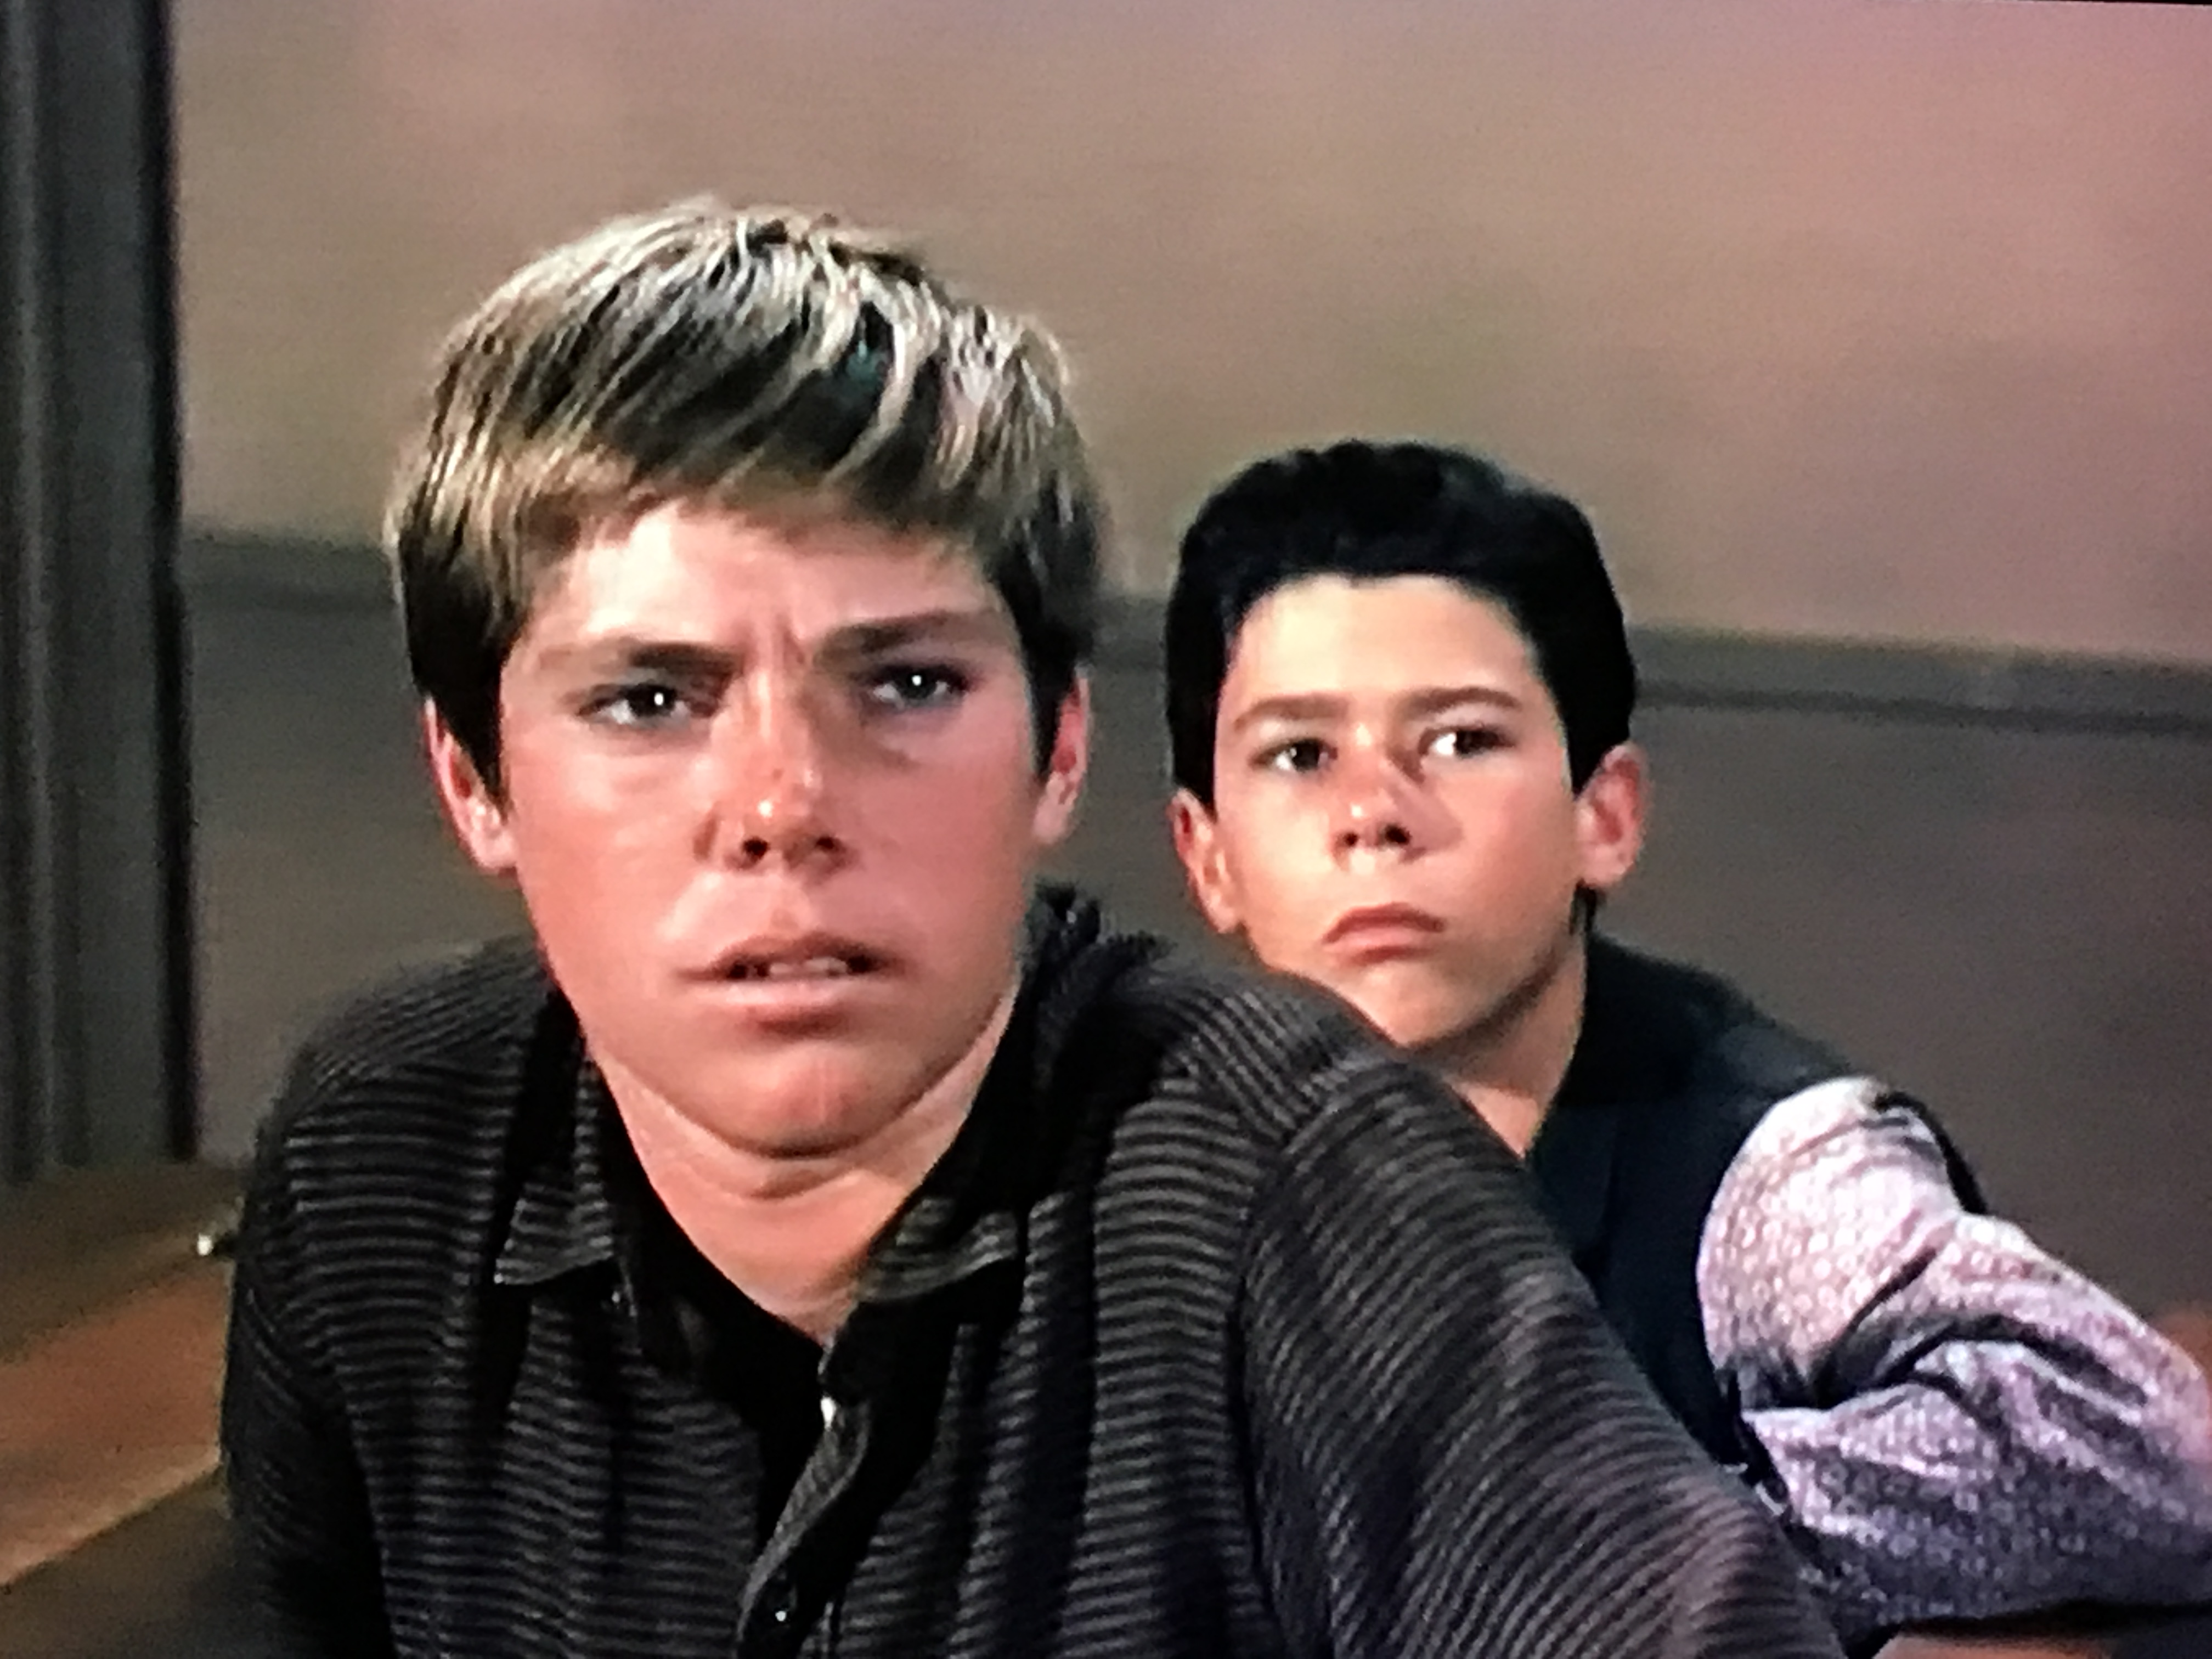 Rick Murray and Lester Maxwell in The Virginian (1962)